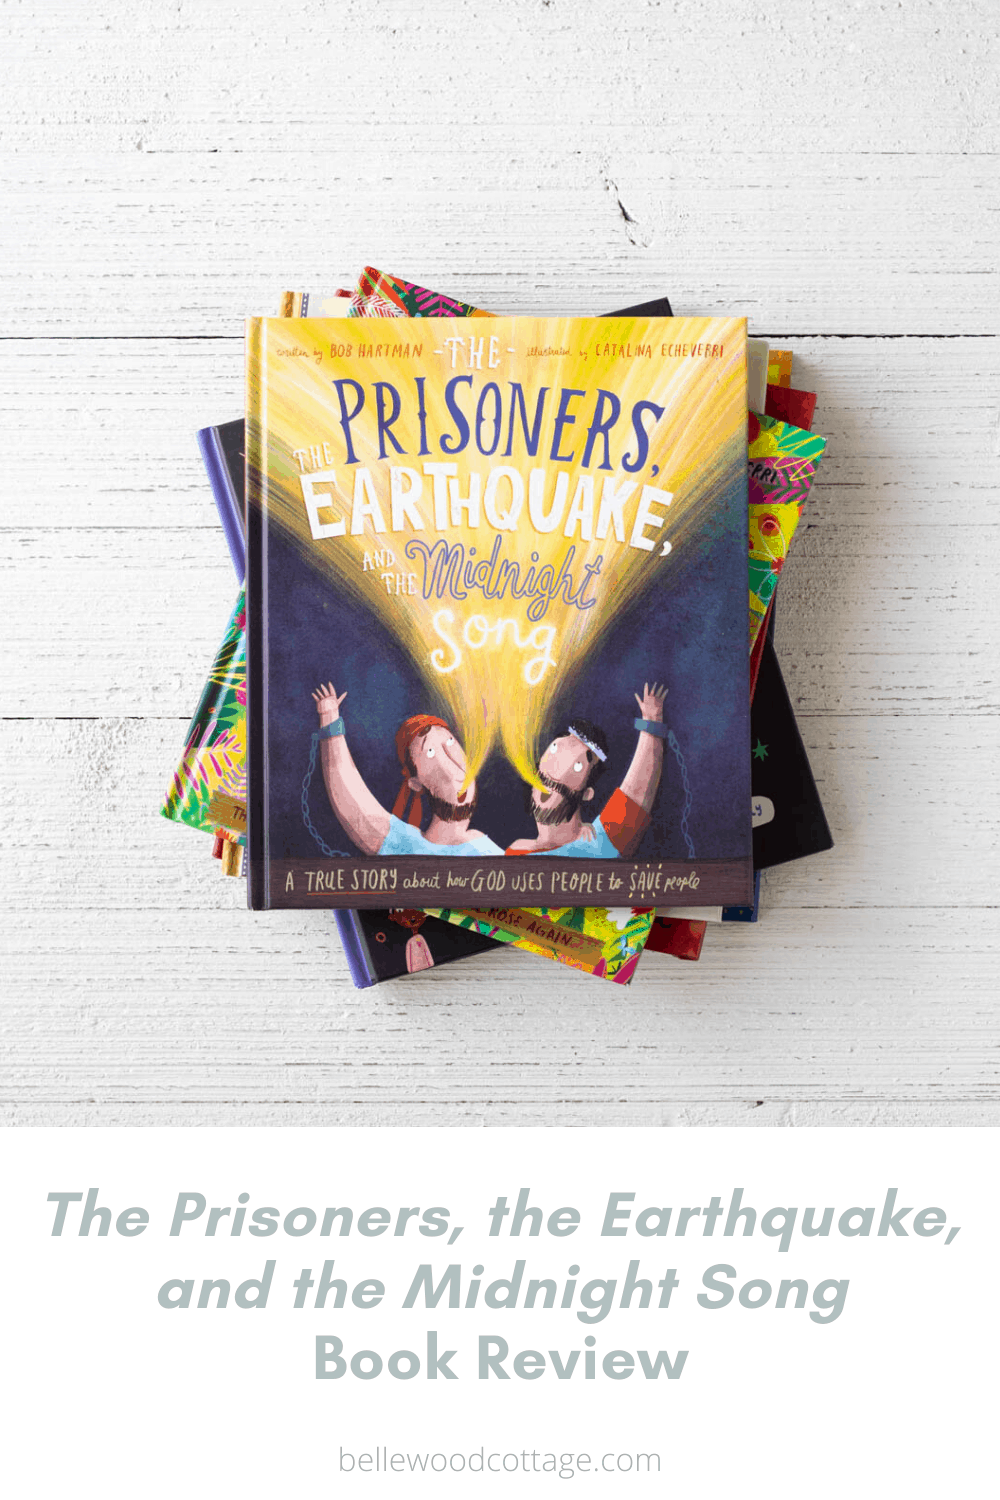 The cover of a new kids' book--The Prisoners, the Earthquake, and the Midnight Song.